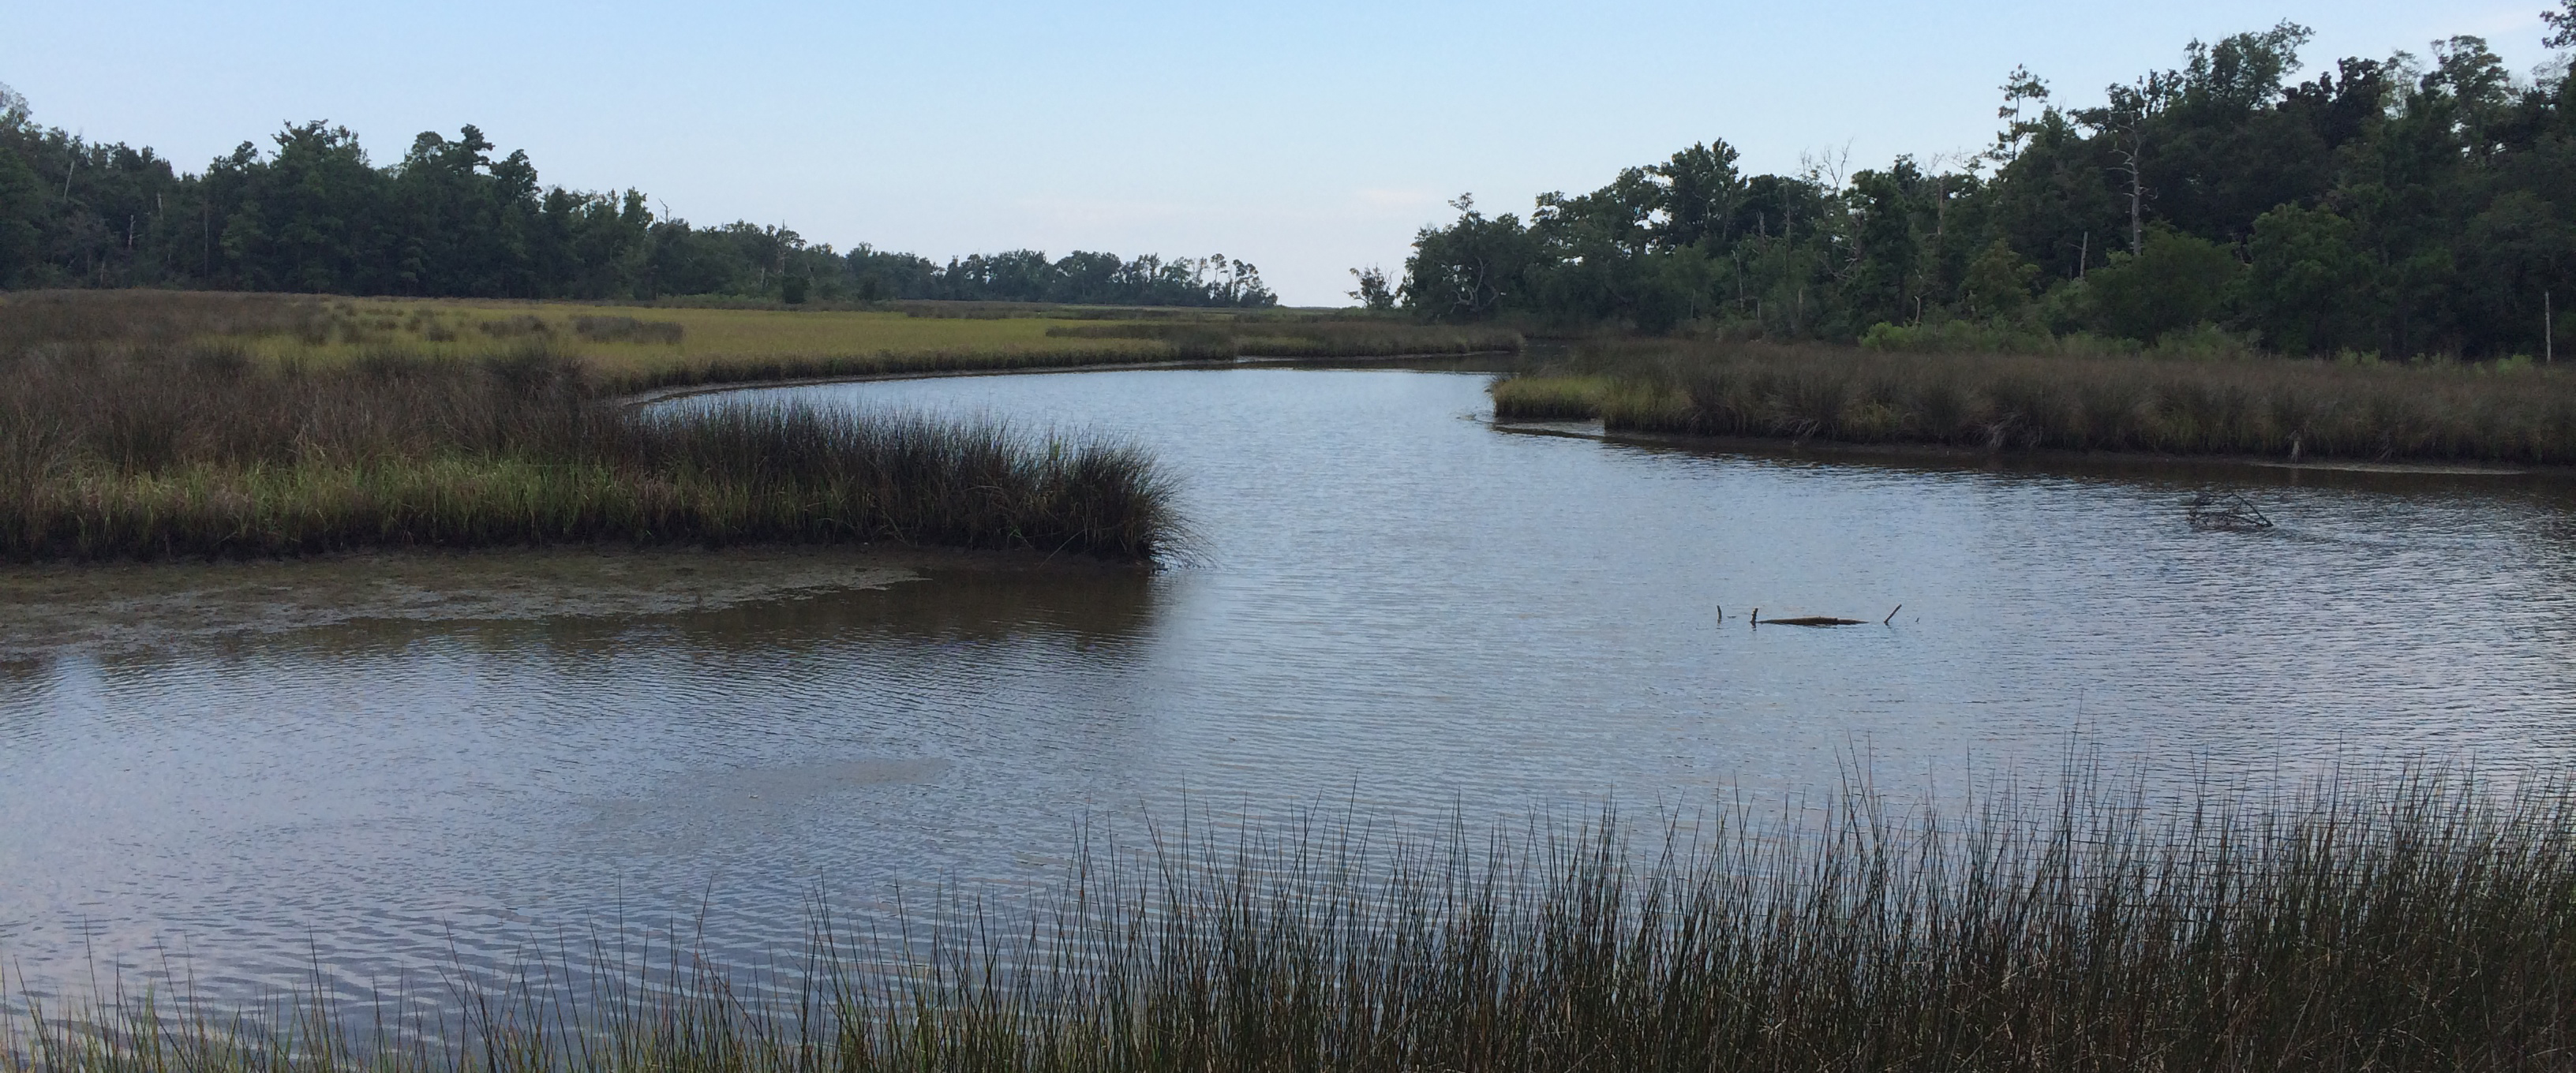 Alabama Releases Second Restoration Plan